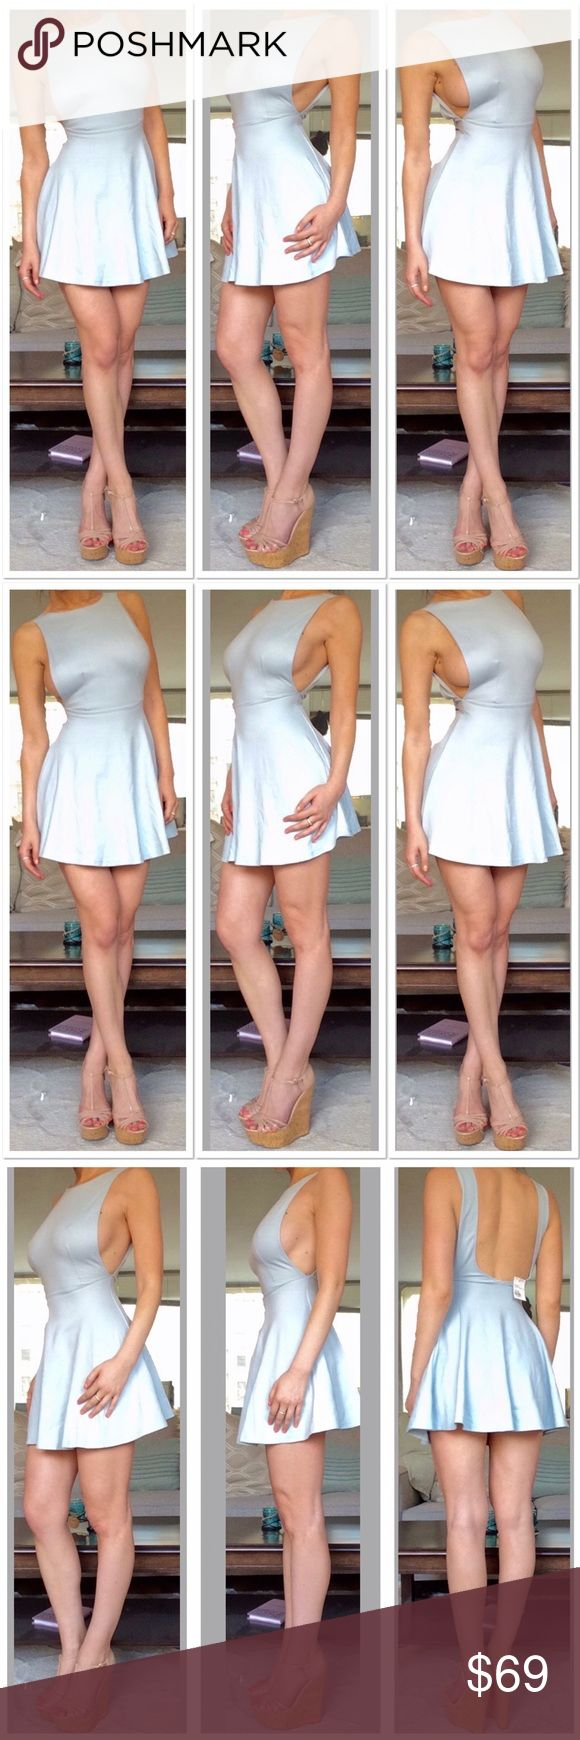 American Apparel Sky Blue Skater Dress Discontinued 😣mix-weight Stretch jersey with low armholes. Super sexy! American Apparel Dresses Mini